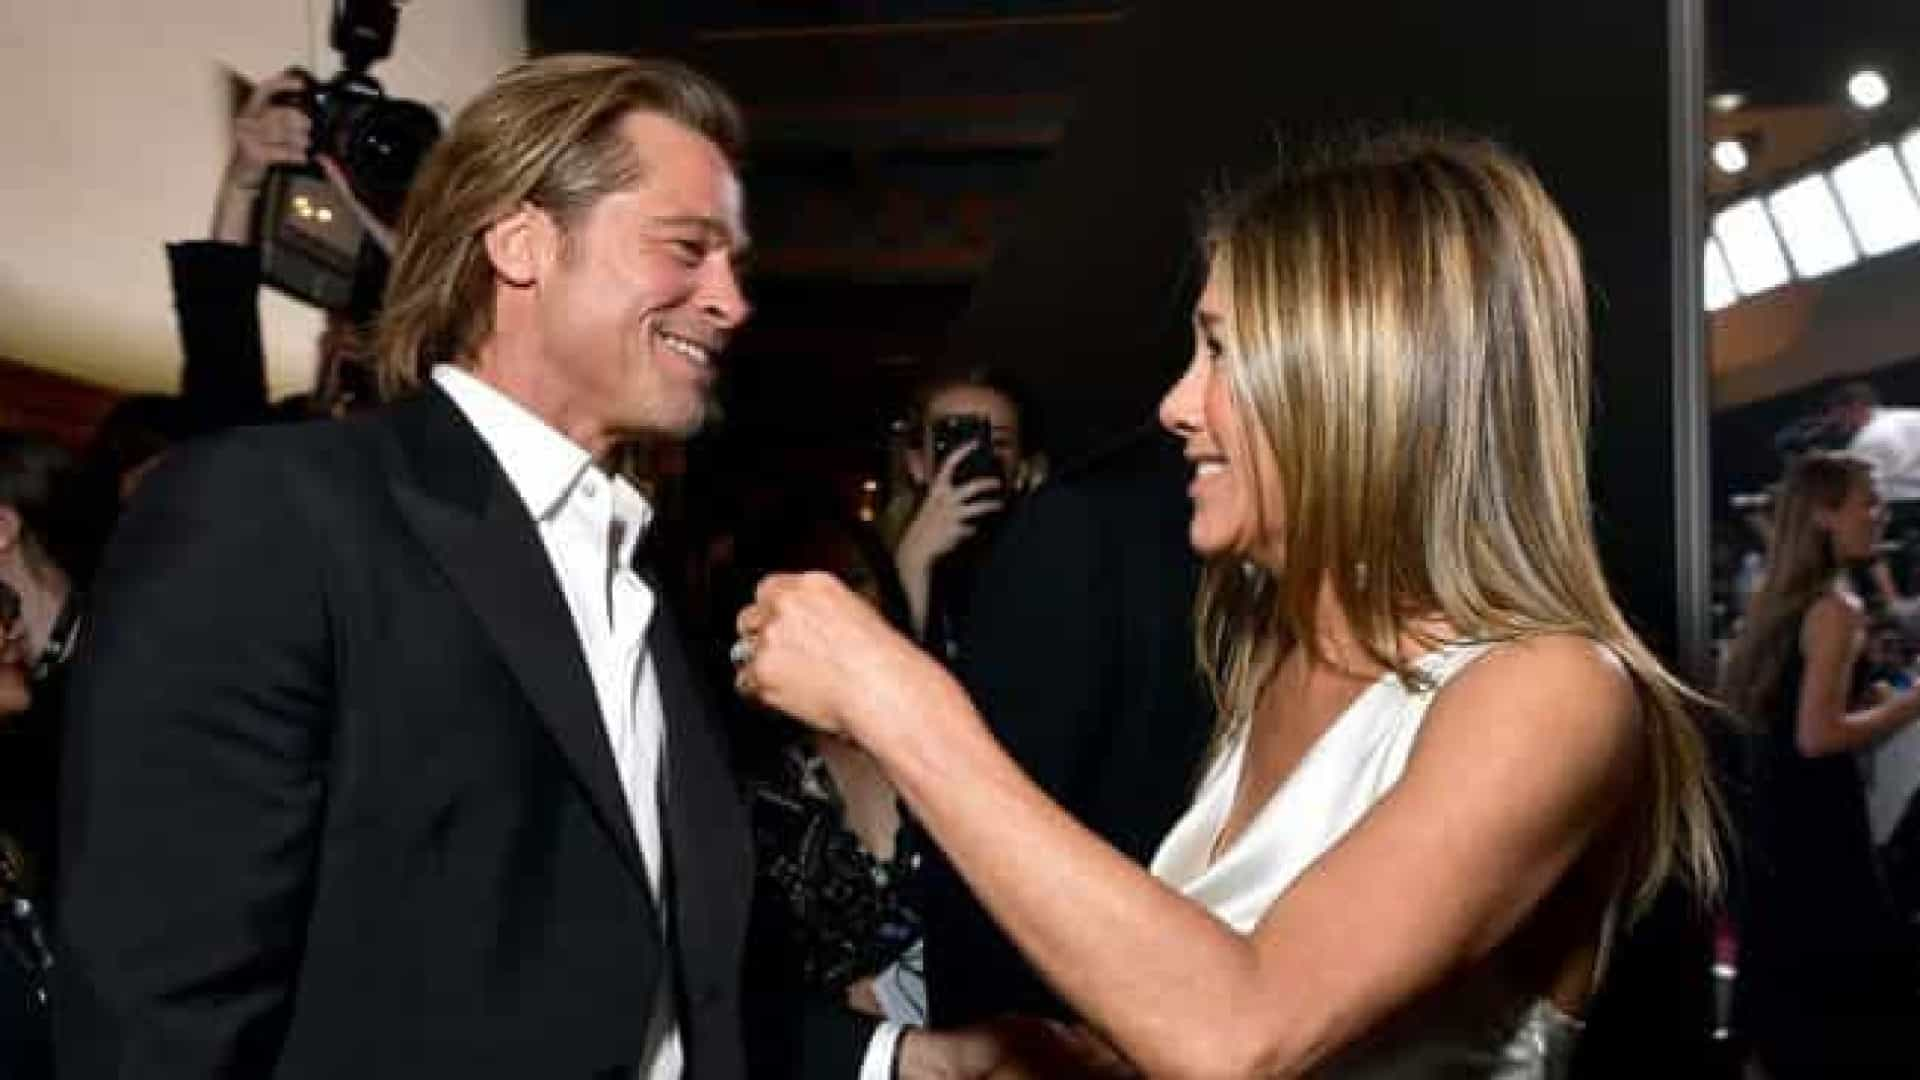 Reencontro de Aniston e Pitt no SAG Awards gera controvérsias